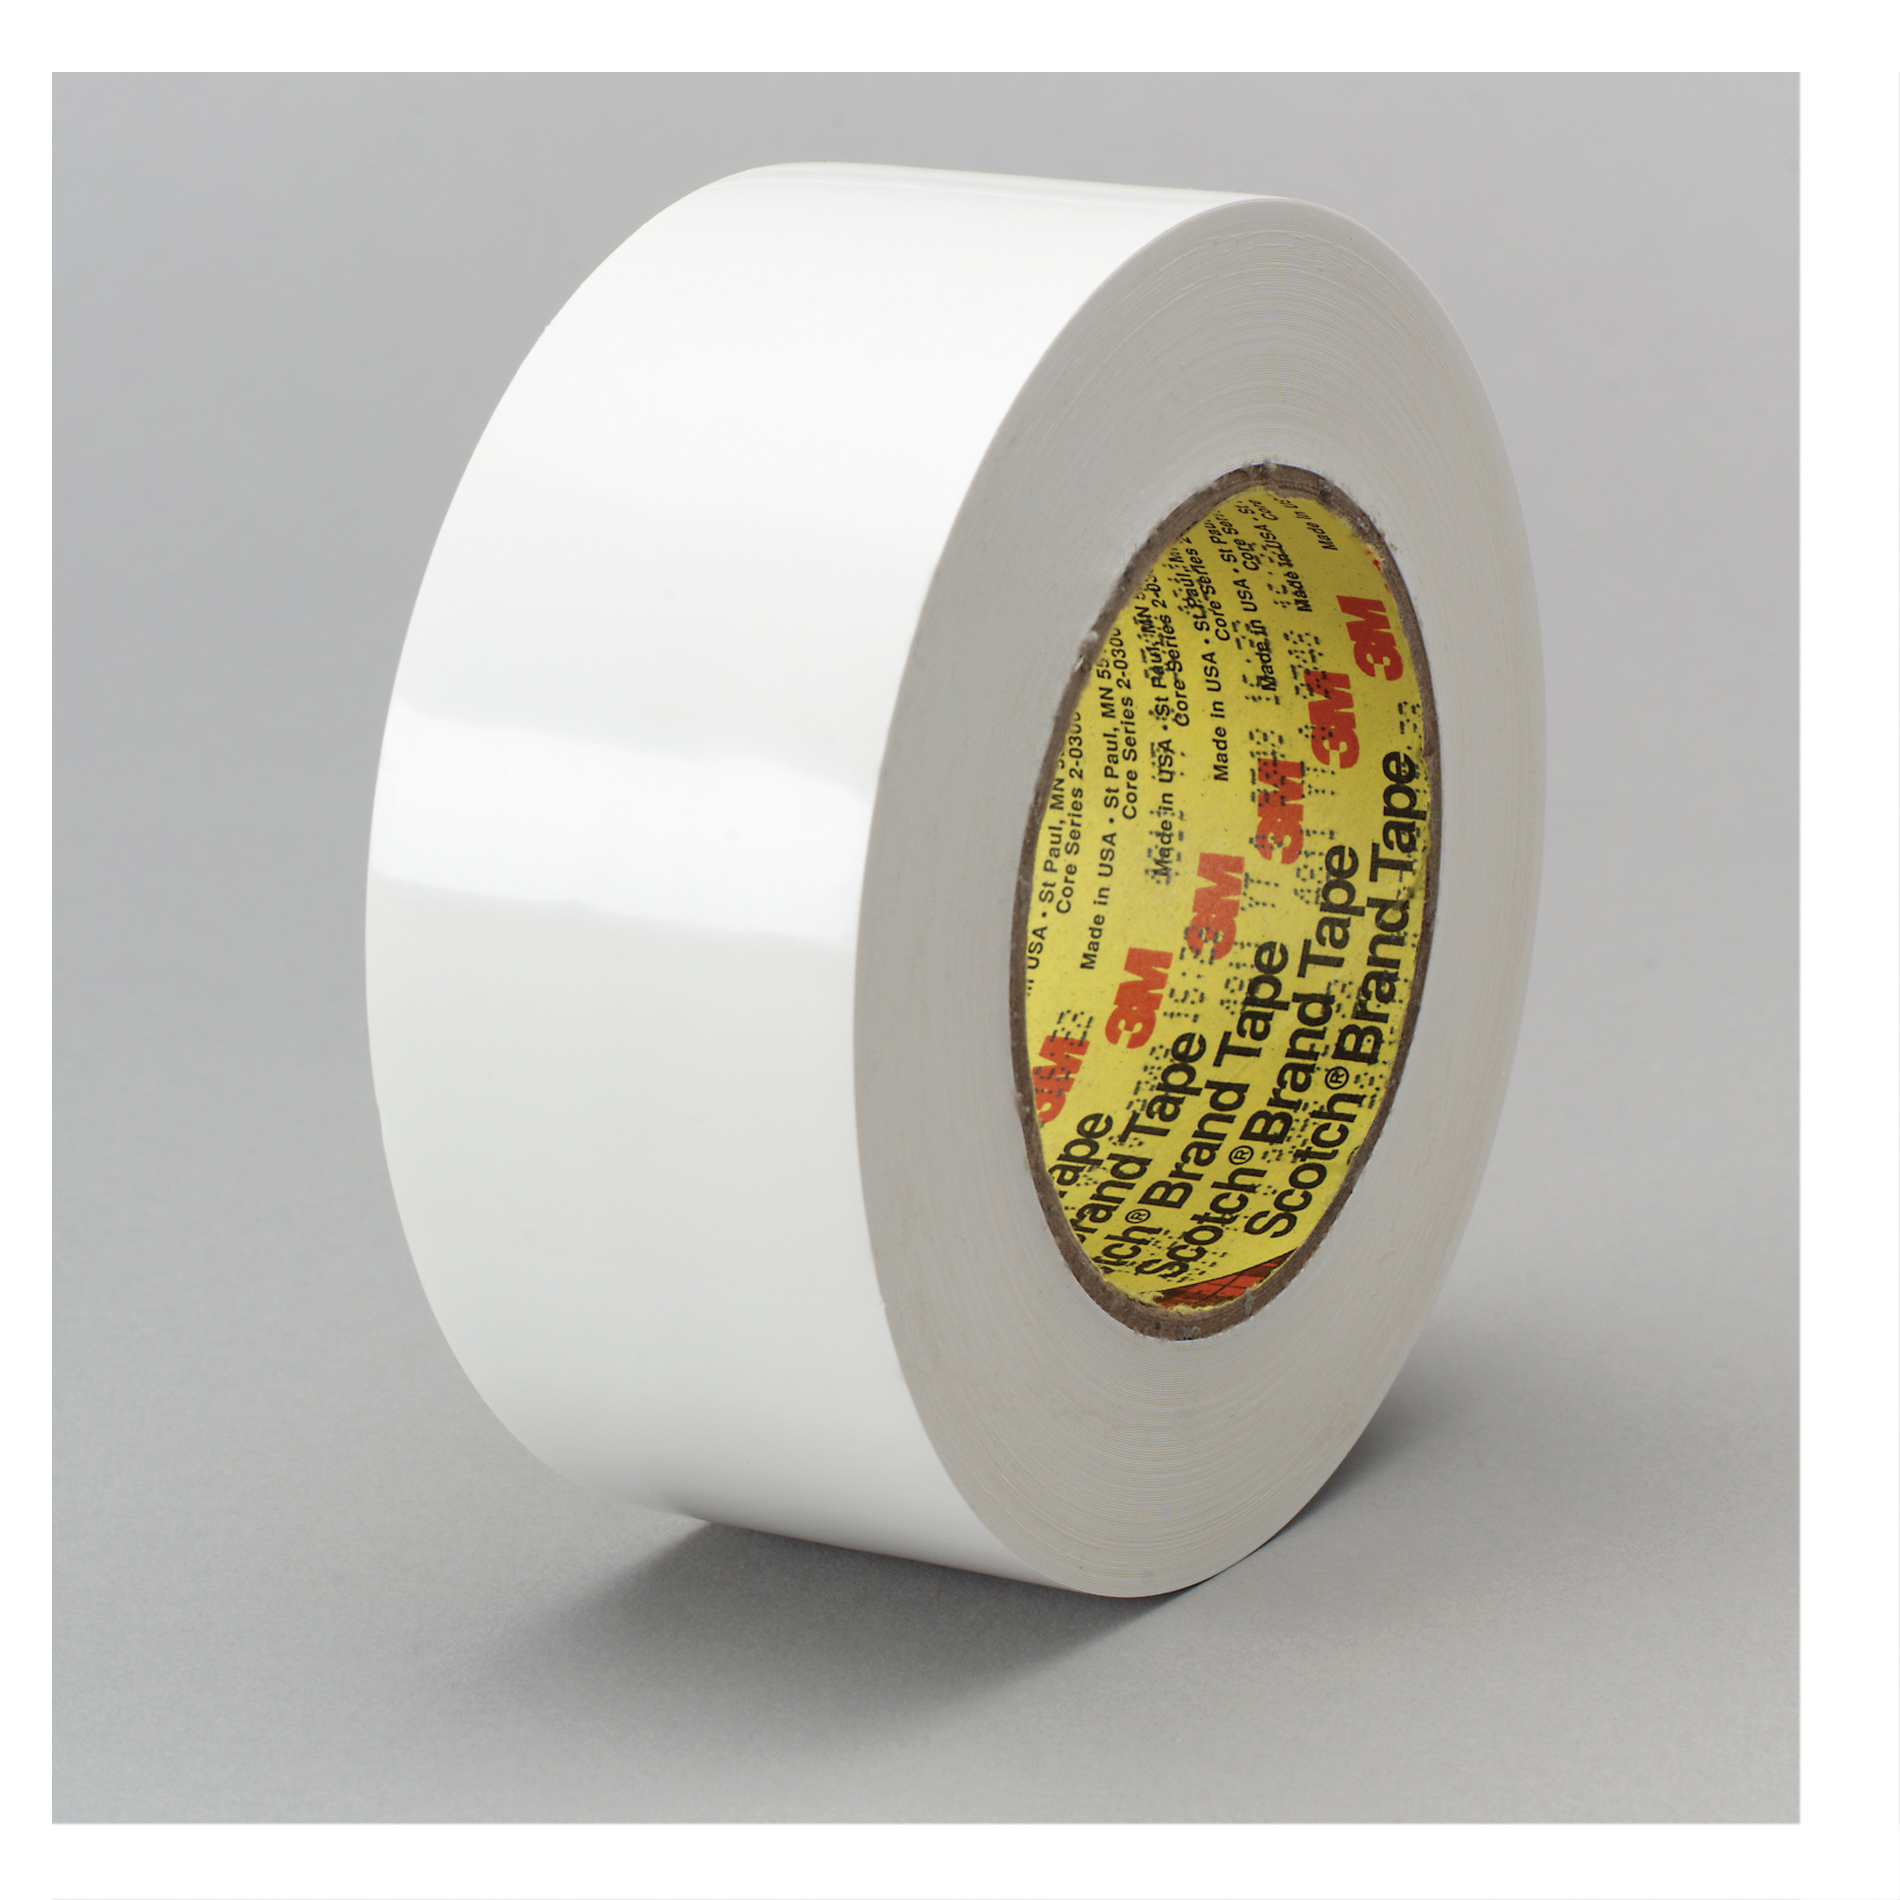 3M™ 021200-62335 Preservation Sealing Tape, 36 yd L x 3 in W, 9.5 mil THK, Rubber Adhesive, Polyethylene Backing, White